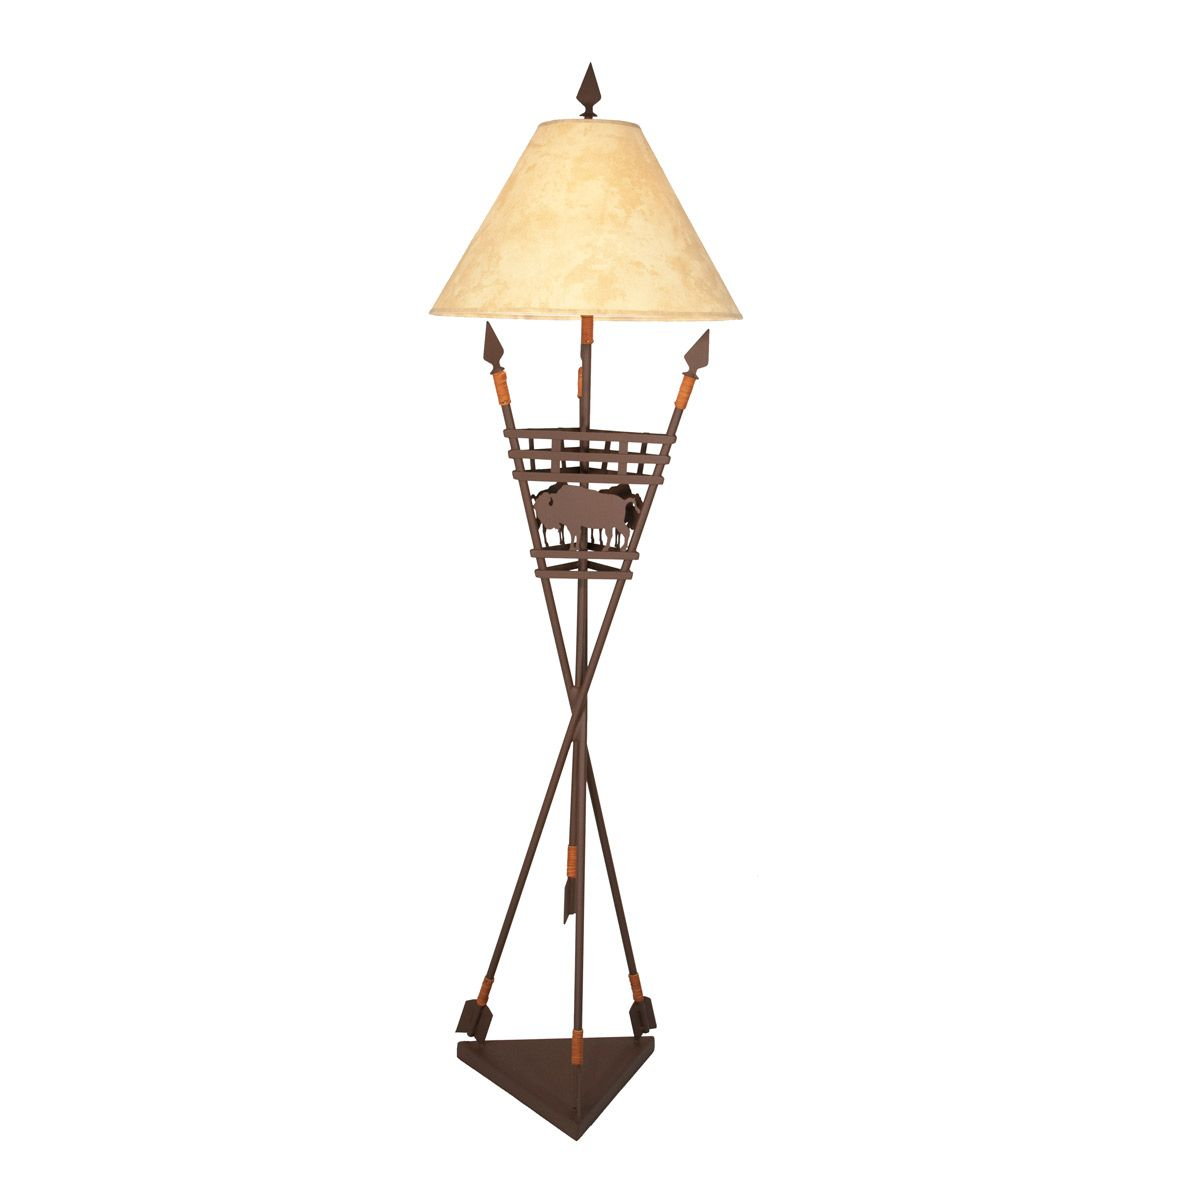 Buffalo & Arrows Floor Lamp